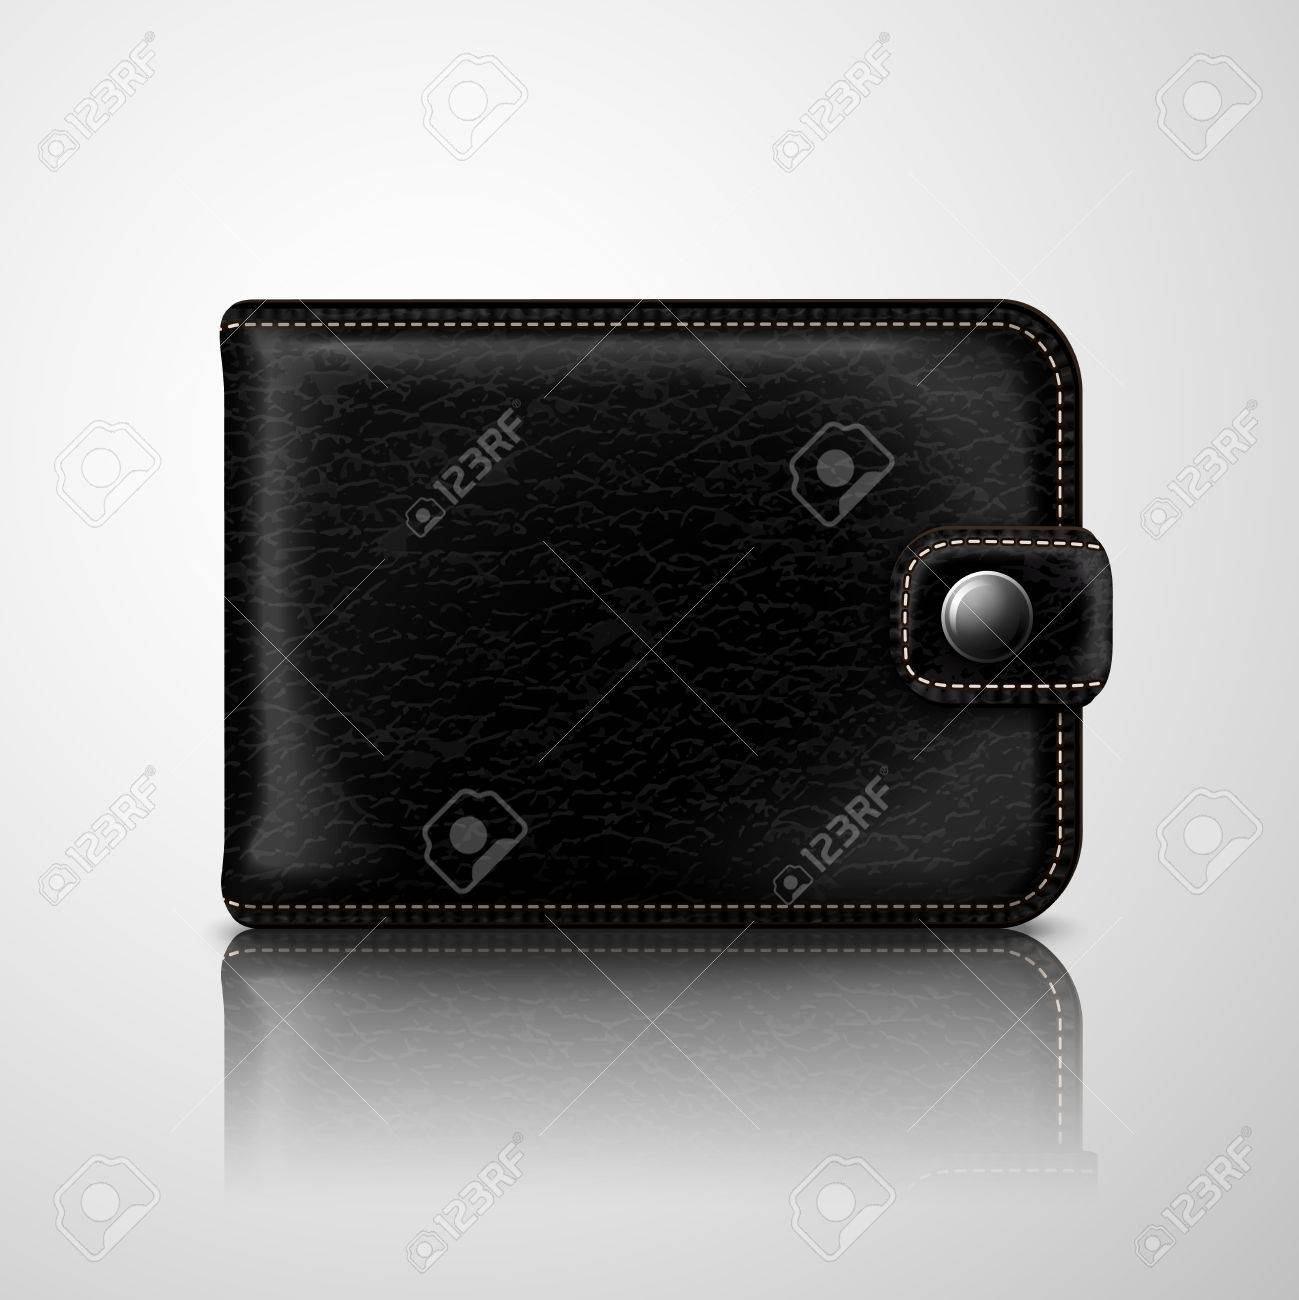 Classic modern black wallet pouch with leather texture and stitches Stock Vector - 27138941